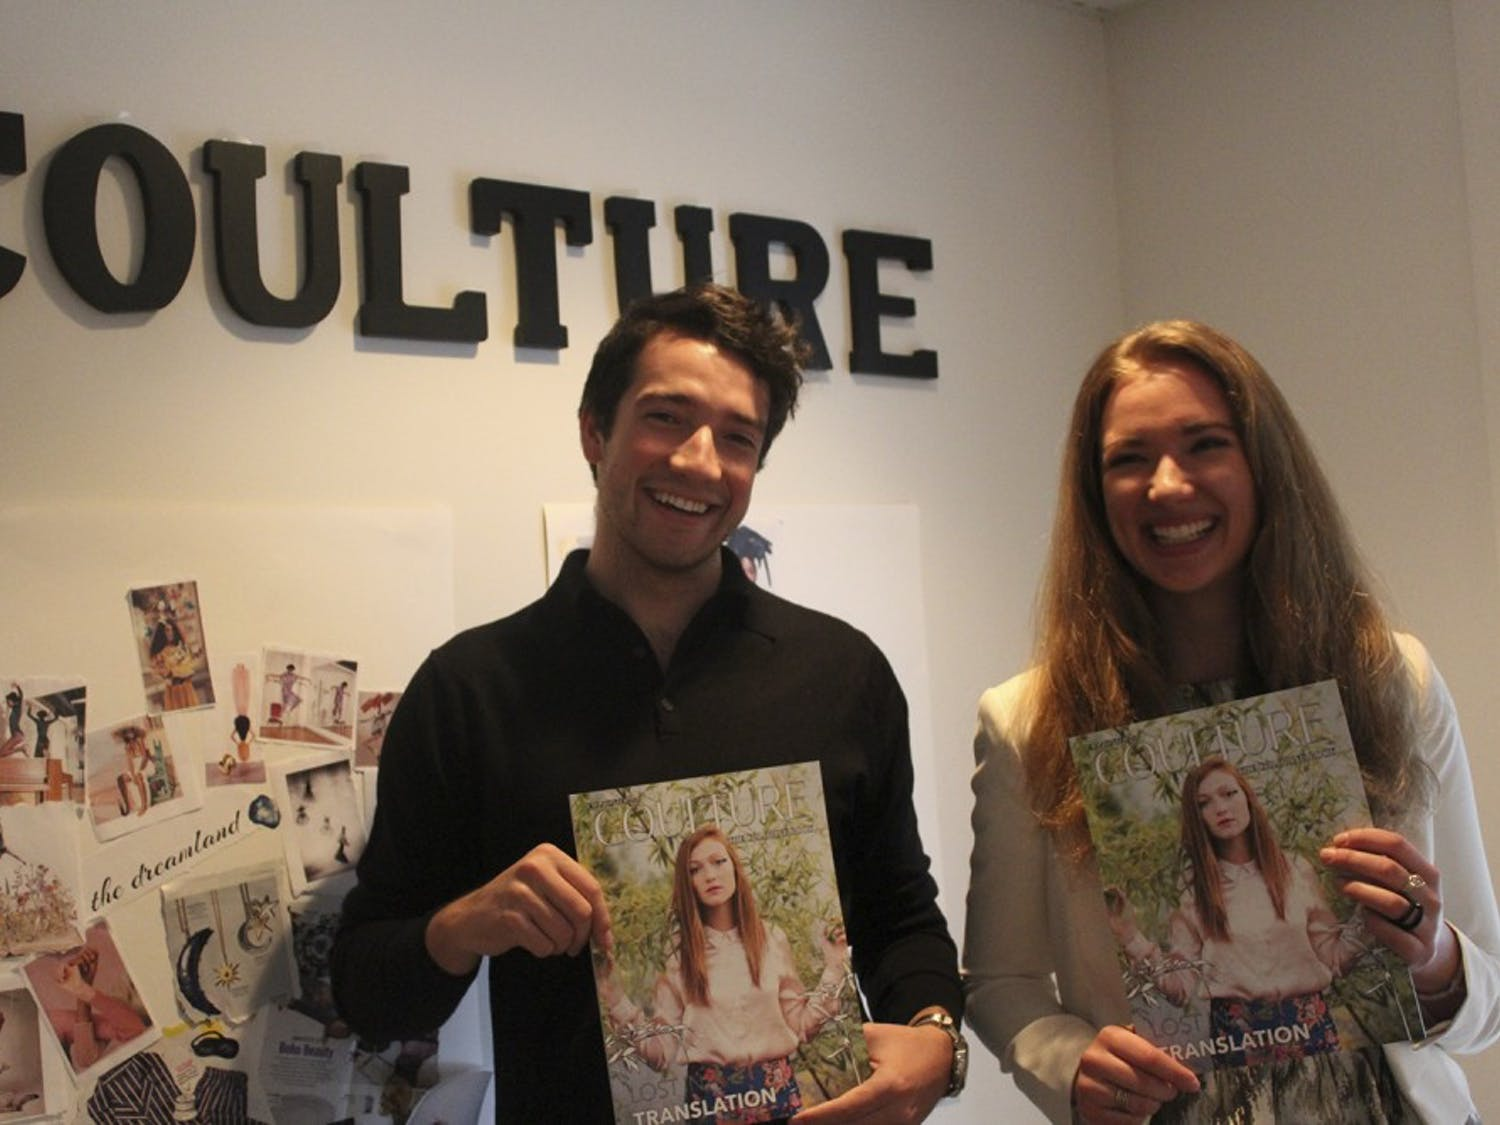 Coulture Magazine is a student-run fashion magazine printed once each semester. Here, co-founders Alexandra Hehlen and Remington Remmel pose for a picture in their new office at 145 Franklin St.